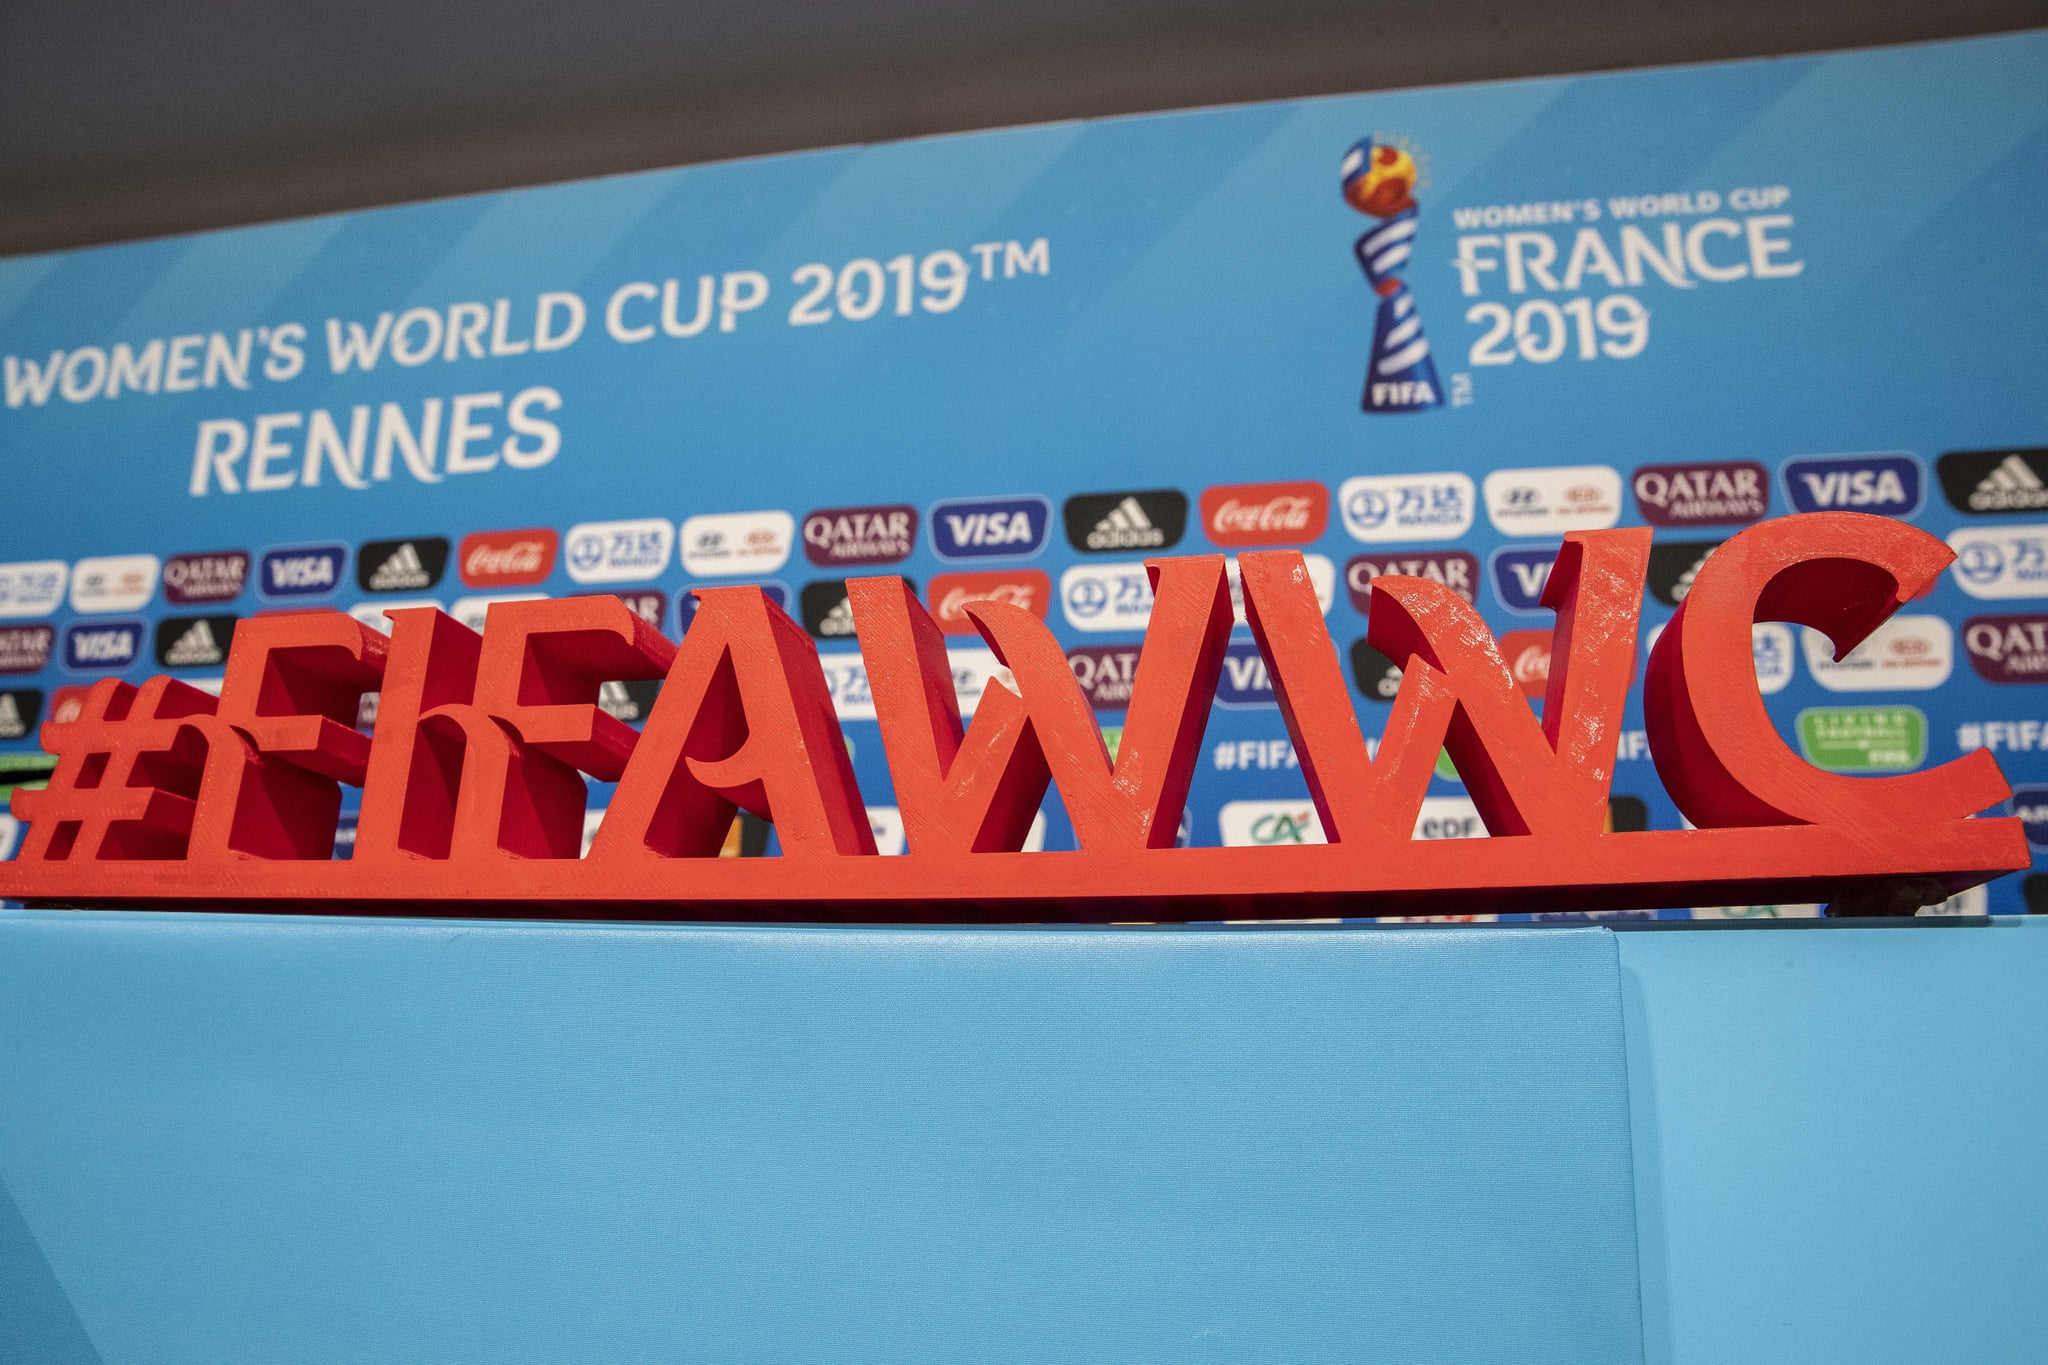 RENNES, FRANCE - JUNE 07: World cup logo is seen at a press conference prior the match against China on June 07, 2019 in Rennes, France. Germany will play their first match against China on June 08, 2019.  (Photo by Maja Hitij/Getty Images)